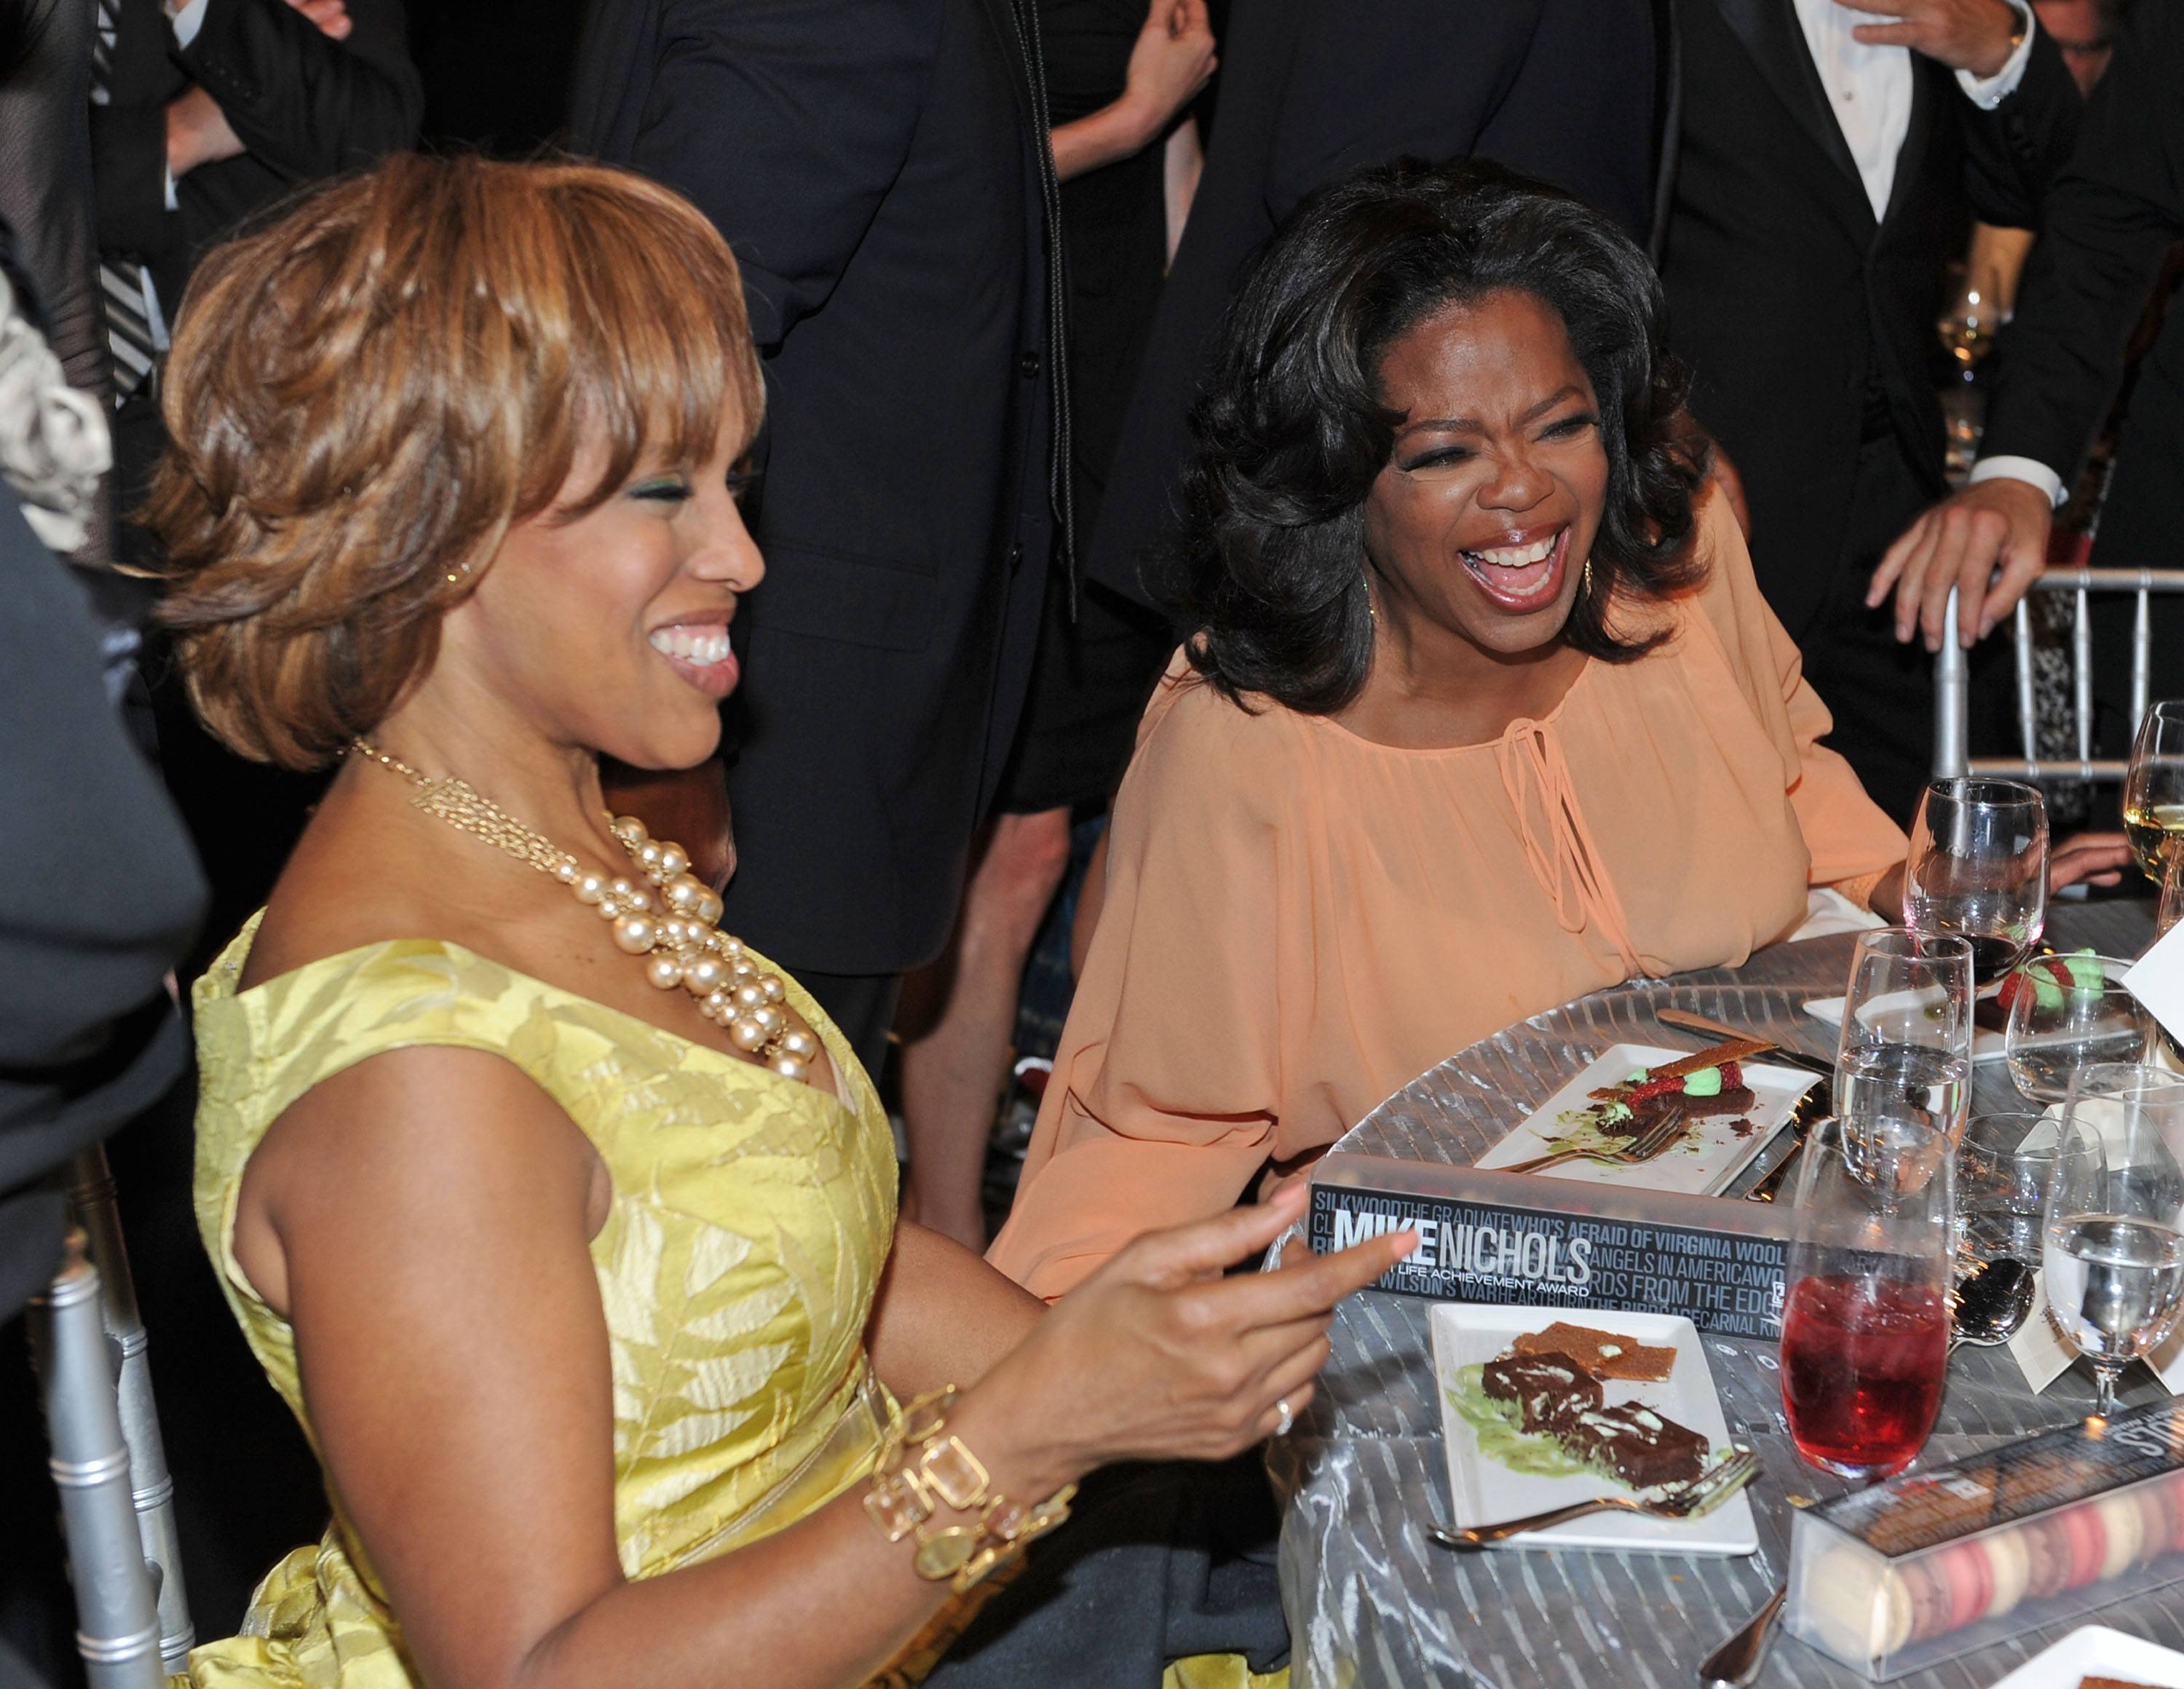 Gayle King & Oprah Winfrey - Oprah nipped rumors of them being lesbians in the bud?Gayle is like a sister to her. Oprah always has her trusty pal close by and she makes sure Gayle stays gainfully employed. (Photo: Frazer Harrison/Getty Images for AFI)